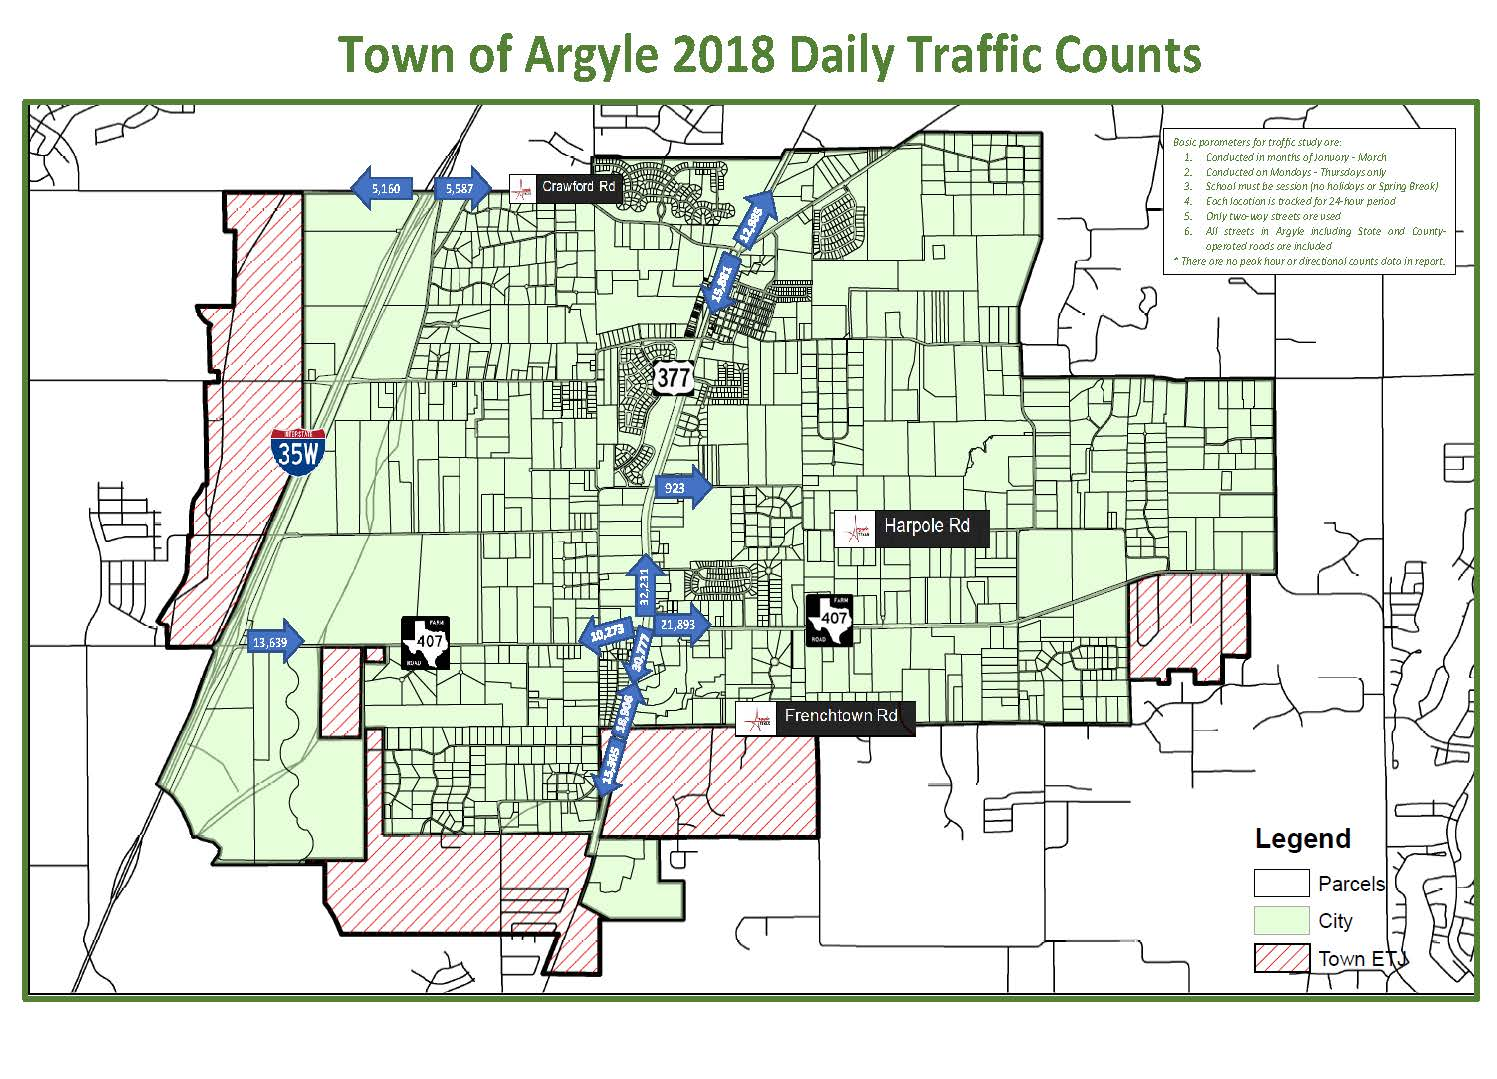 Argyle Traffic Counts Map 8-29-18 Opens in new window